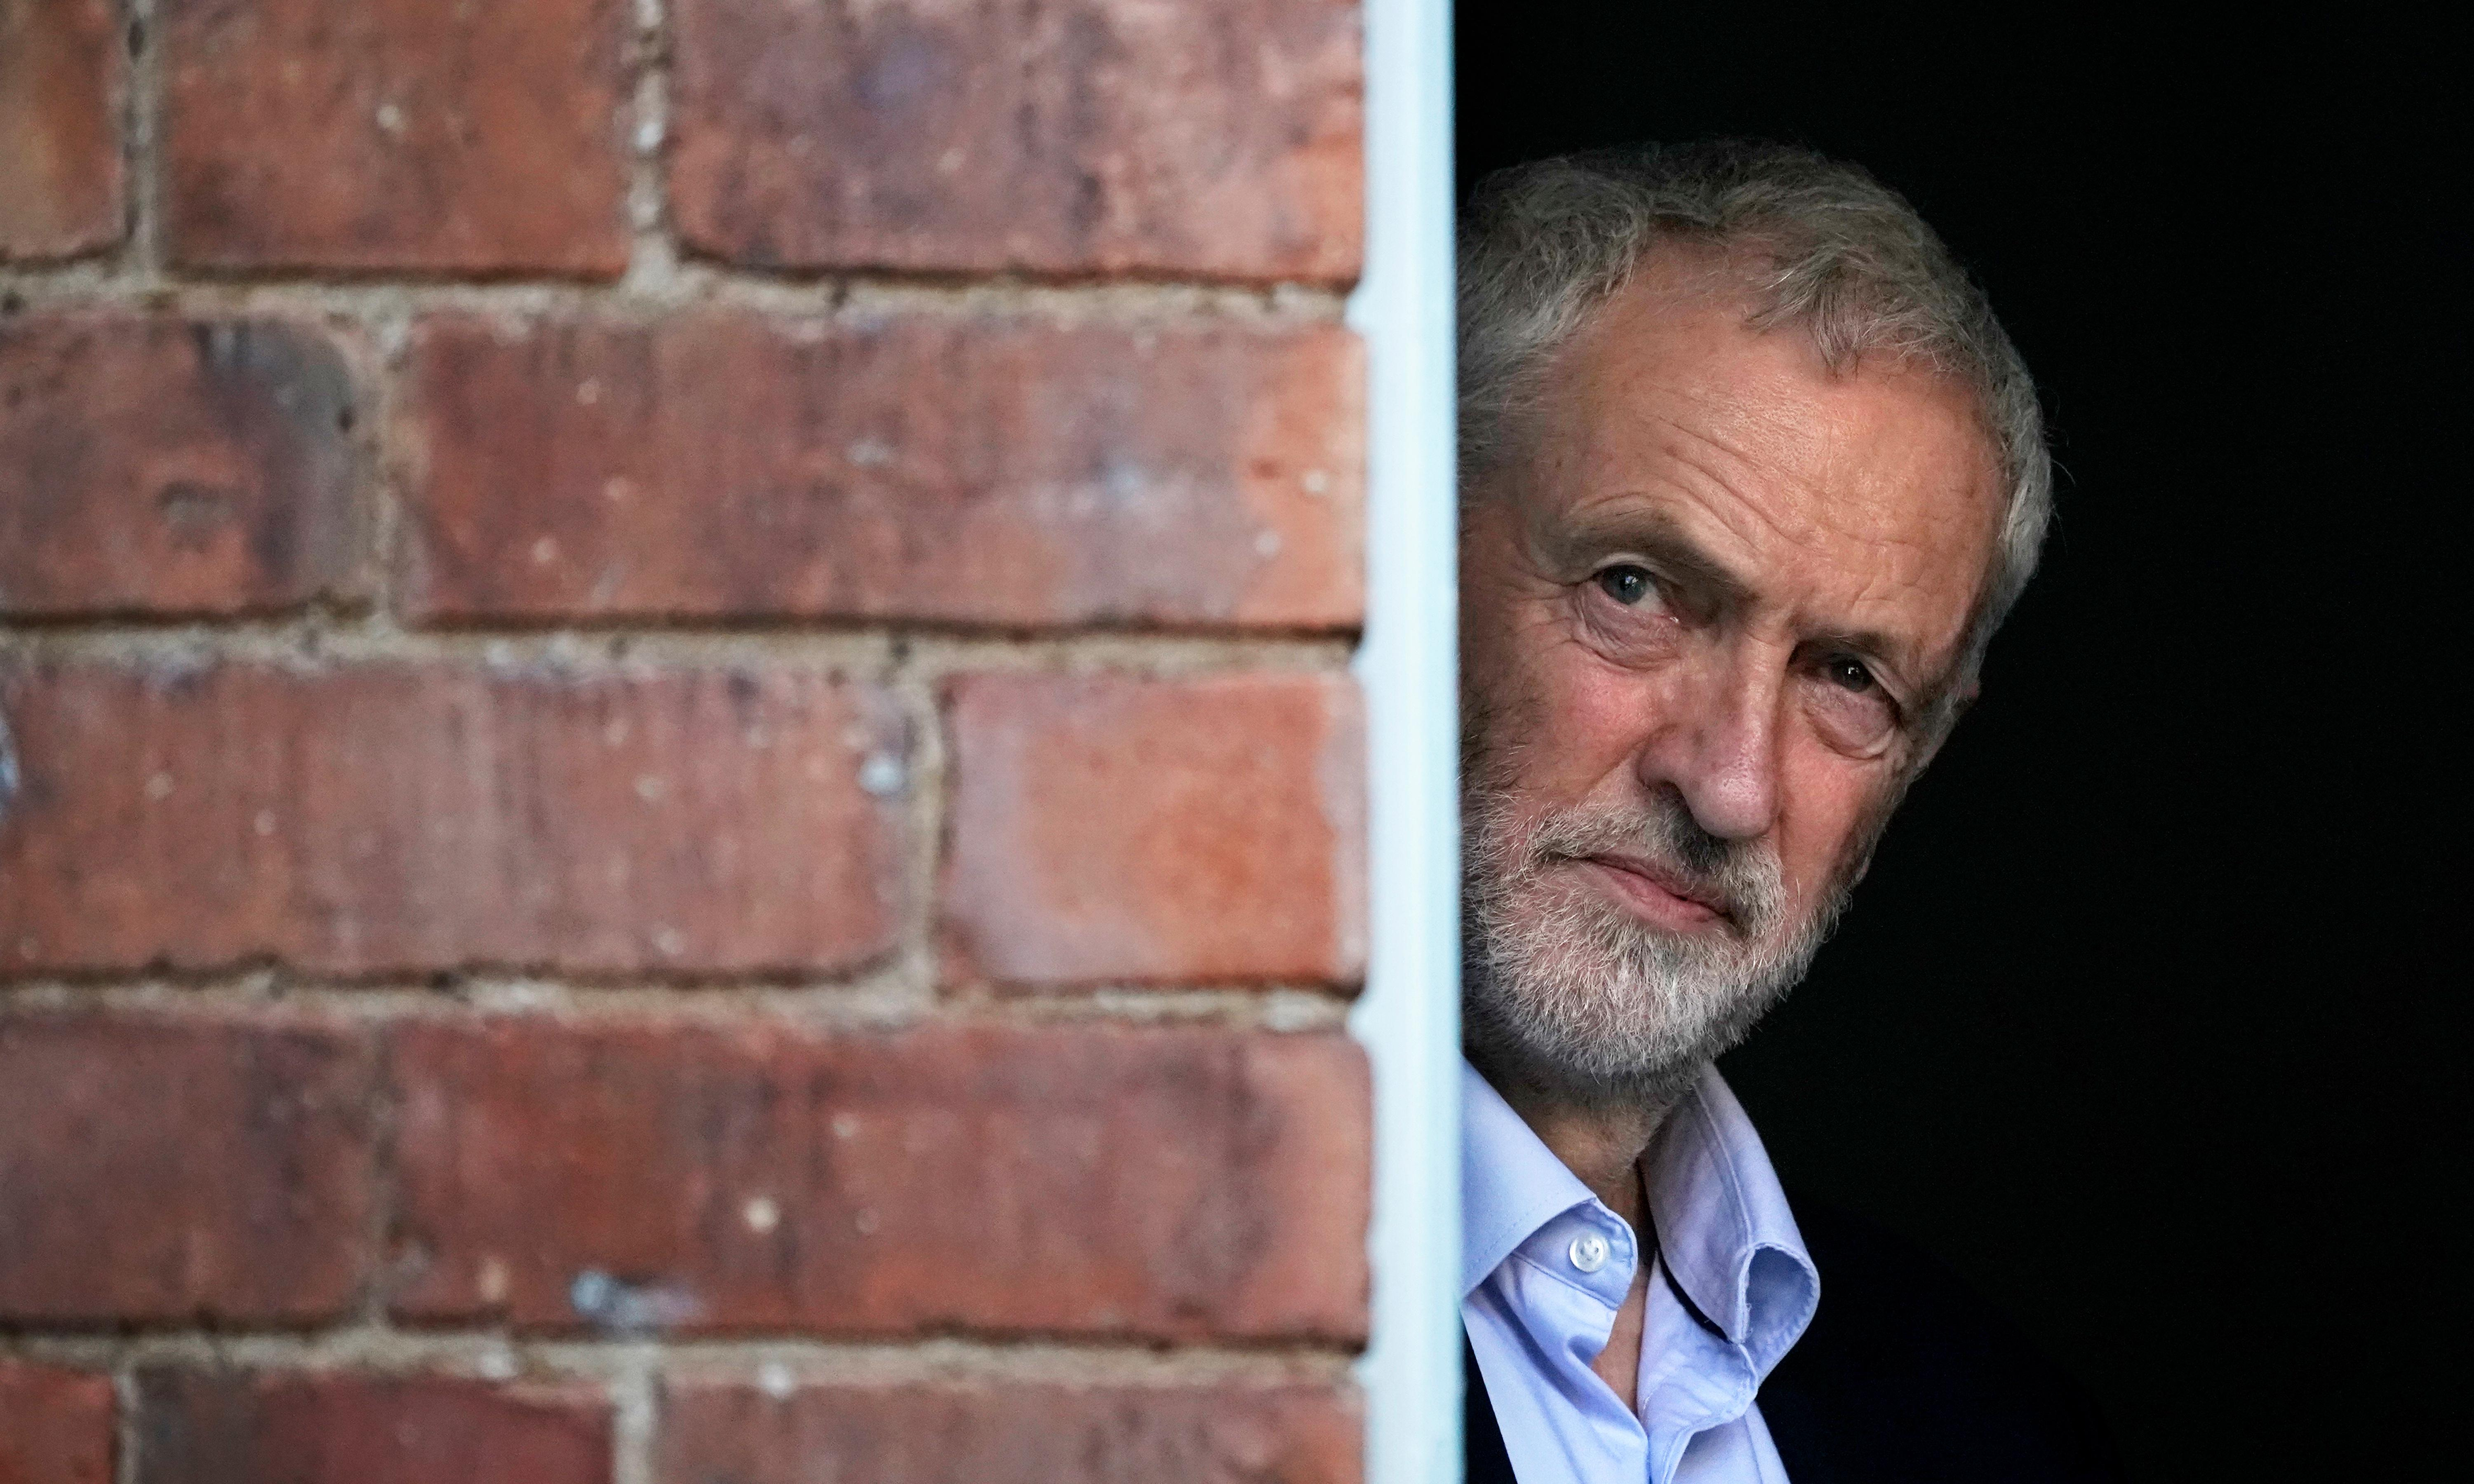 Corbyn told: change course before it's too late for Labour